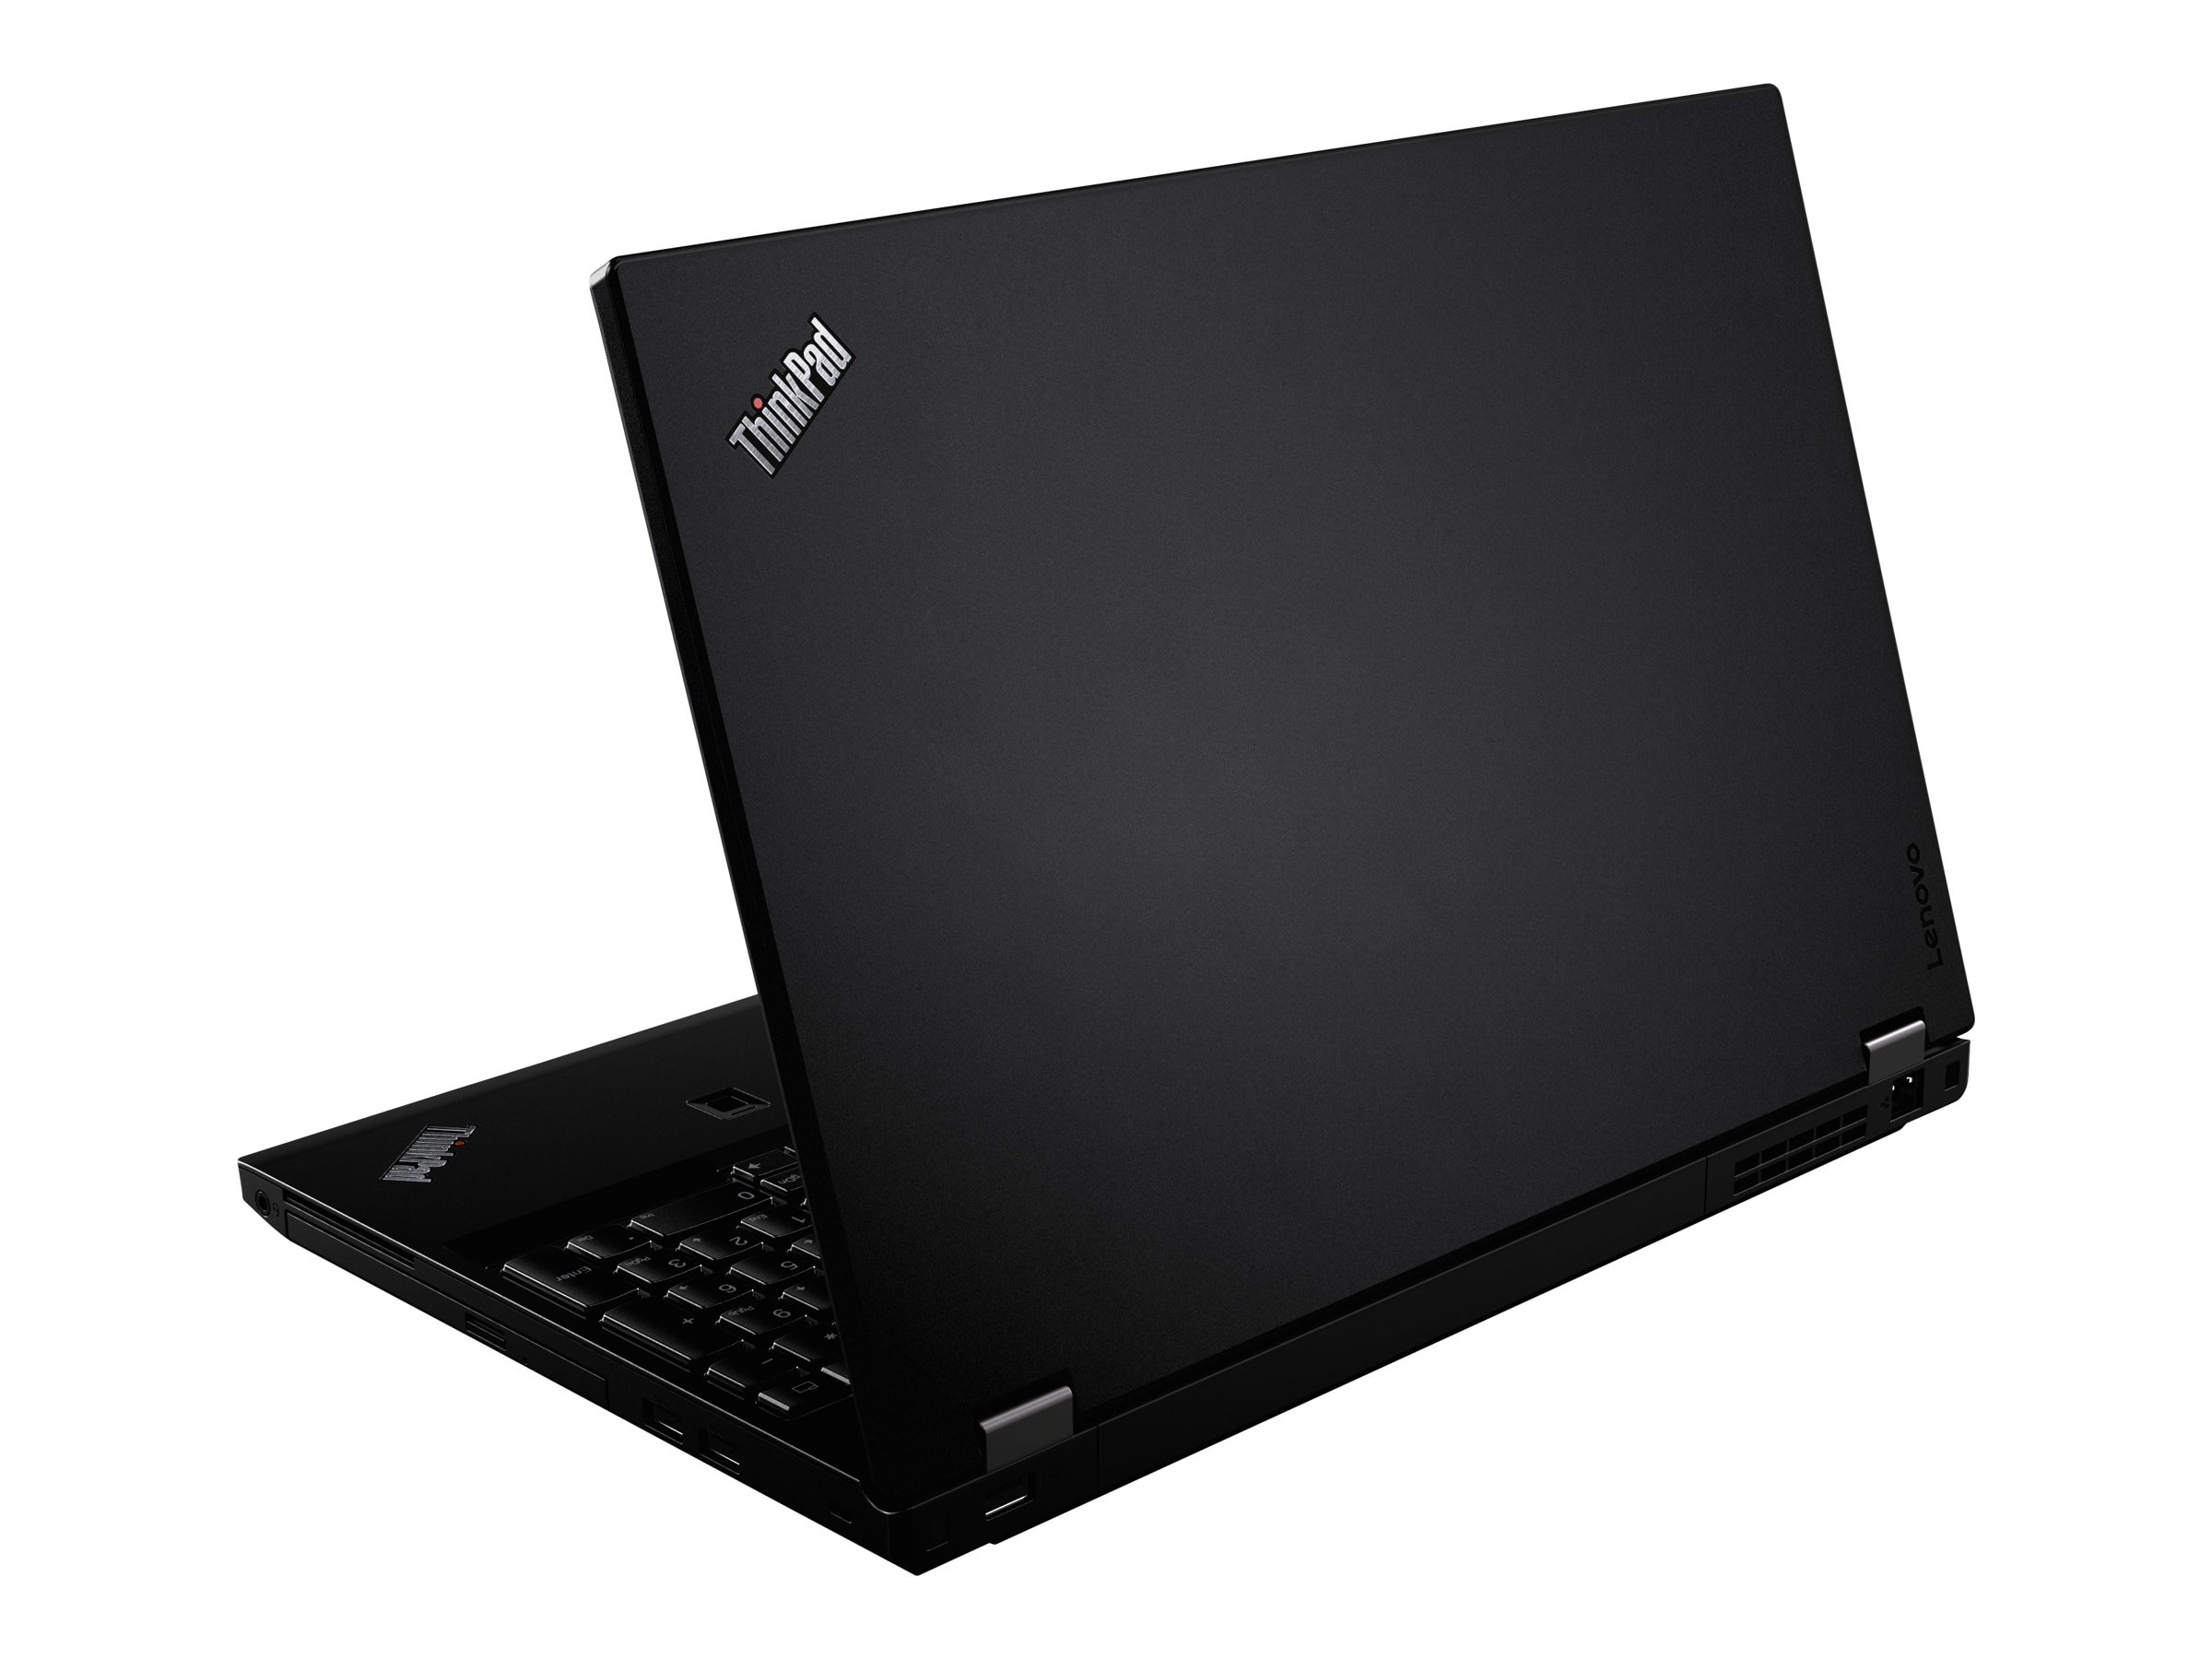 Lenovo TopSeller ThinkPad L560 2.3GHz Core i5 15.6in display, 20F1002BUS